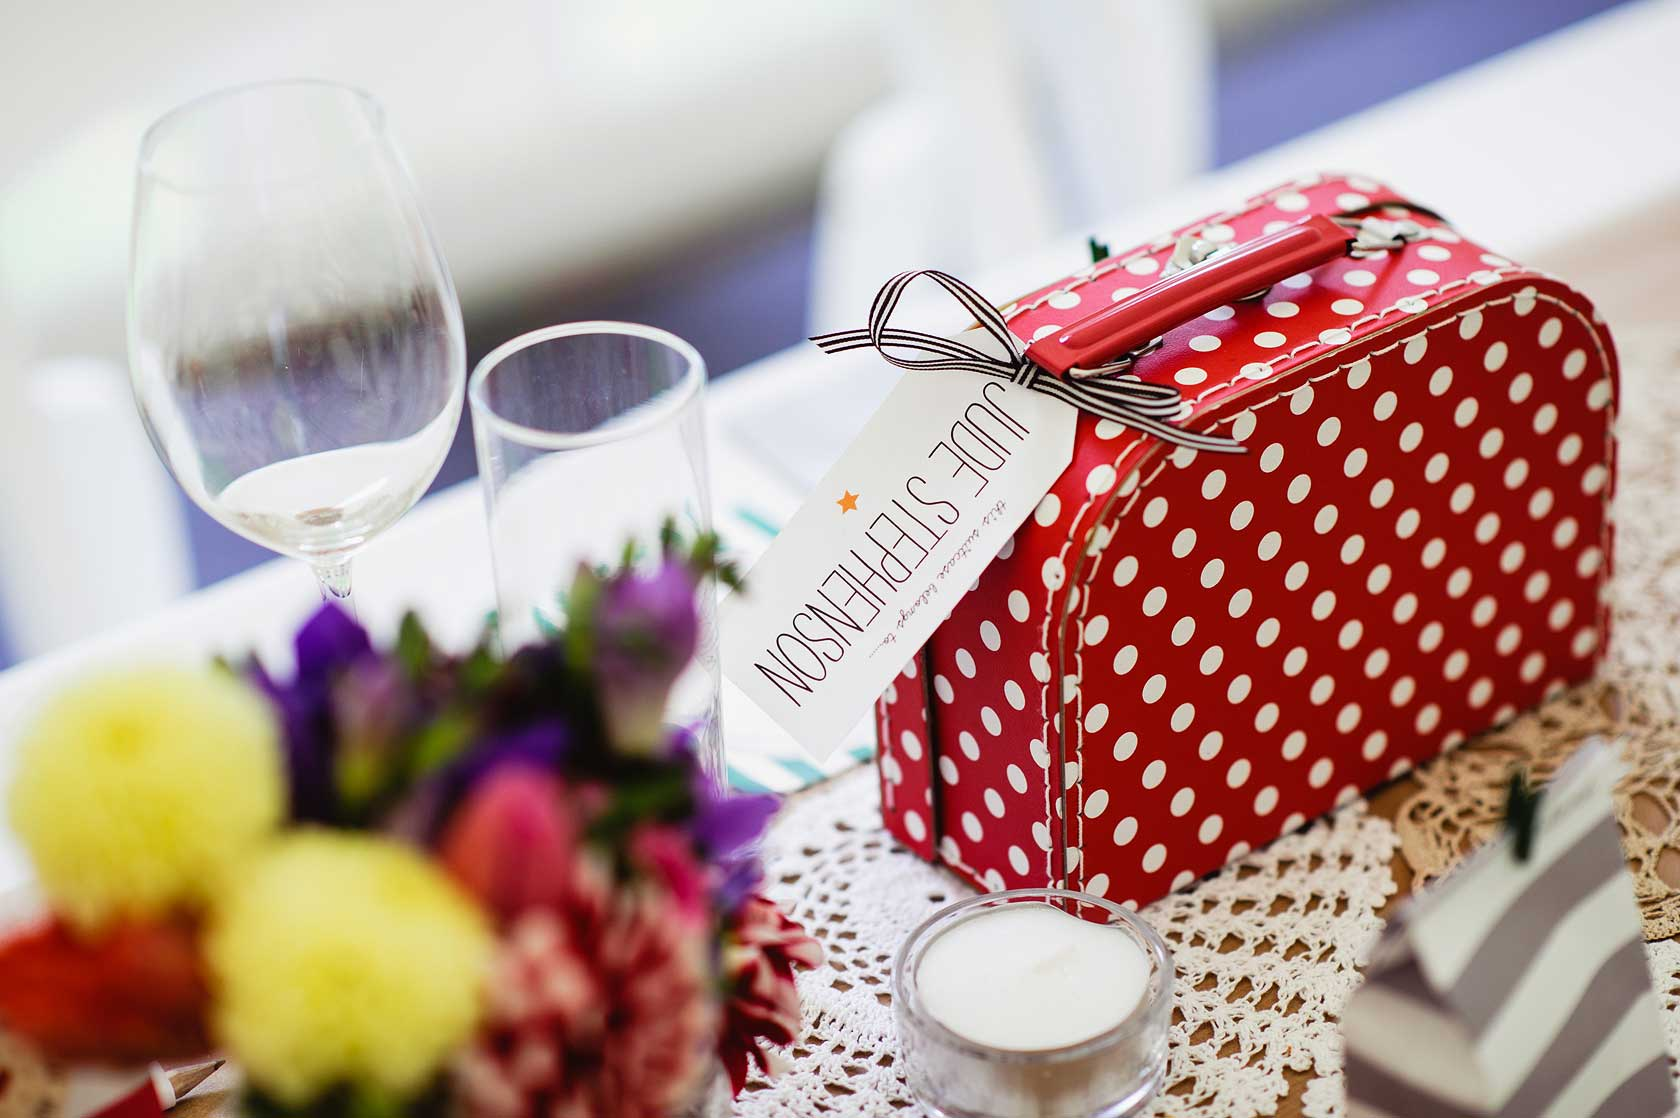 A polka dot suitcase for a guest